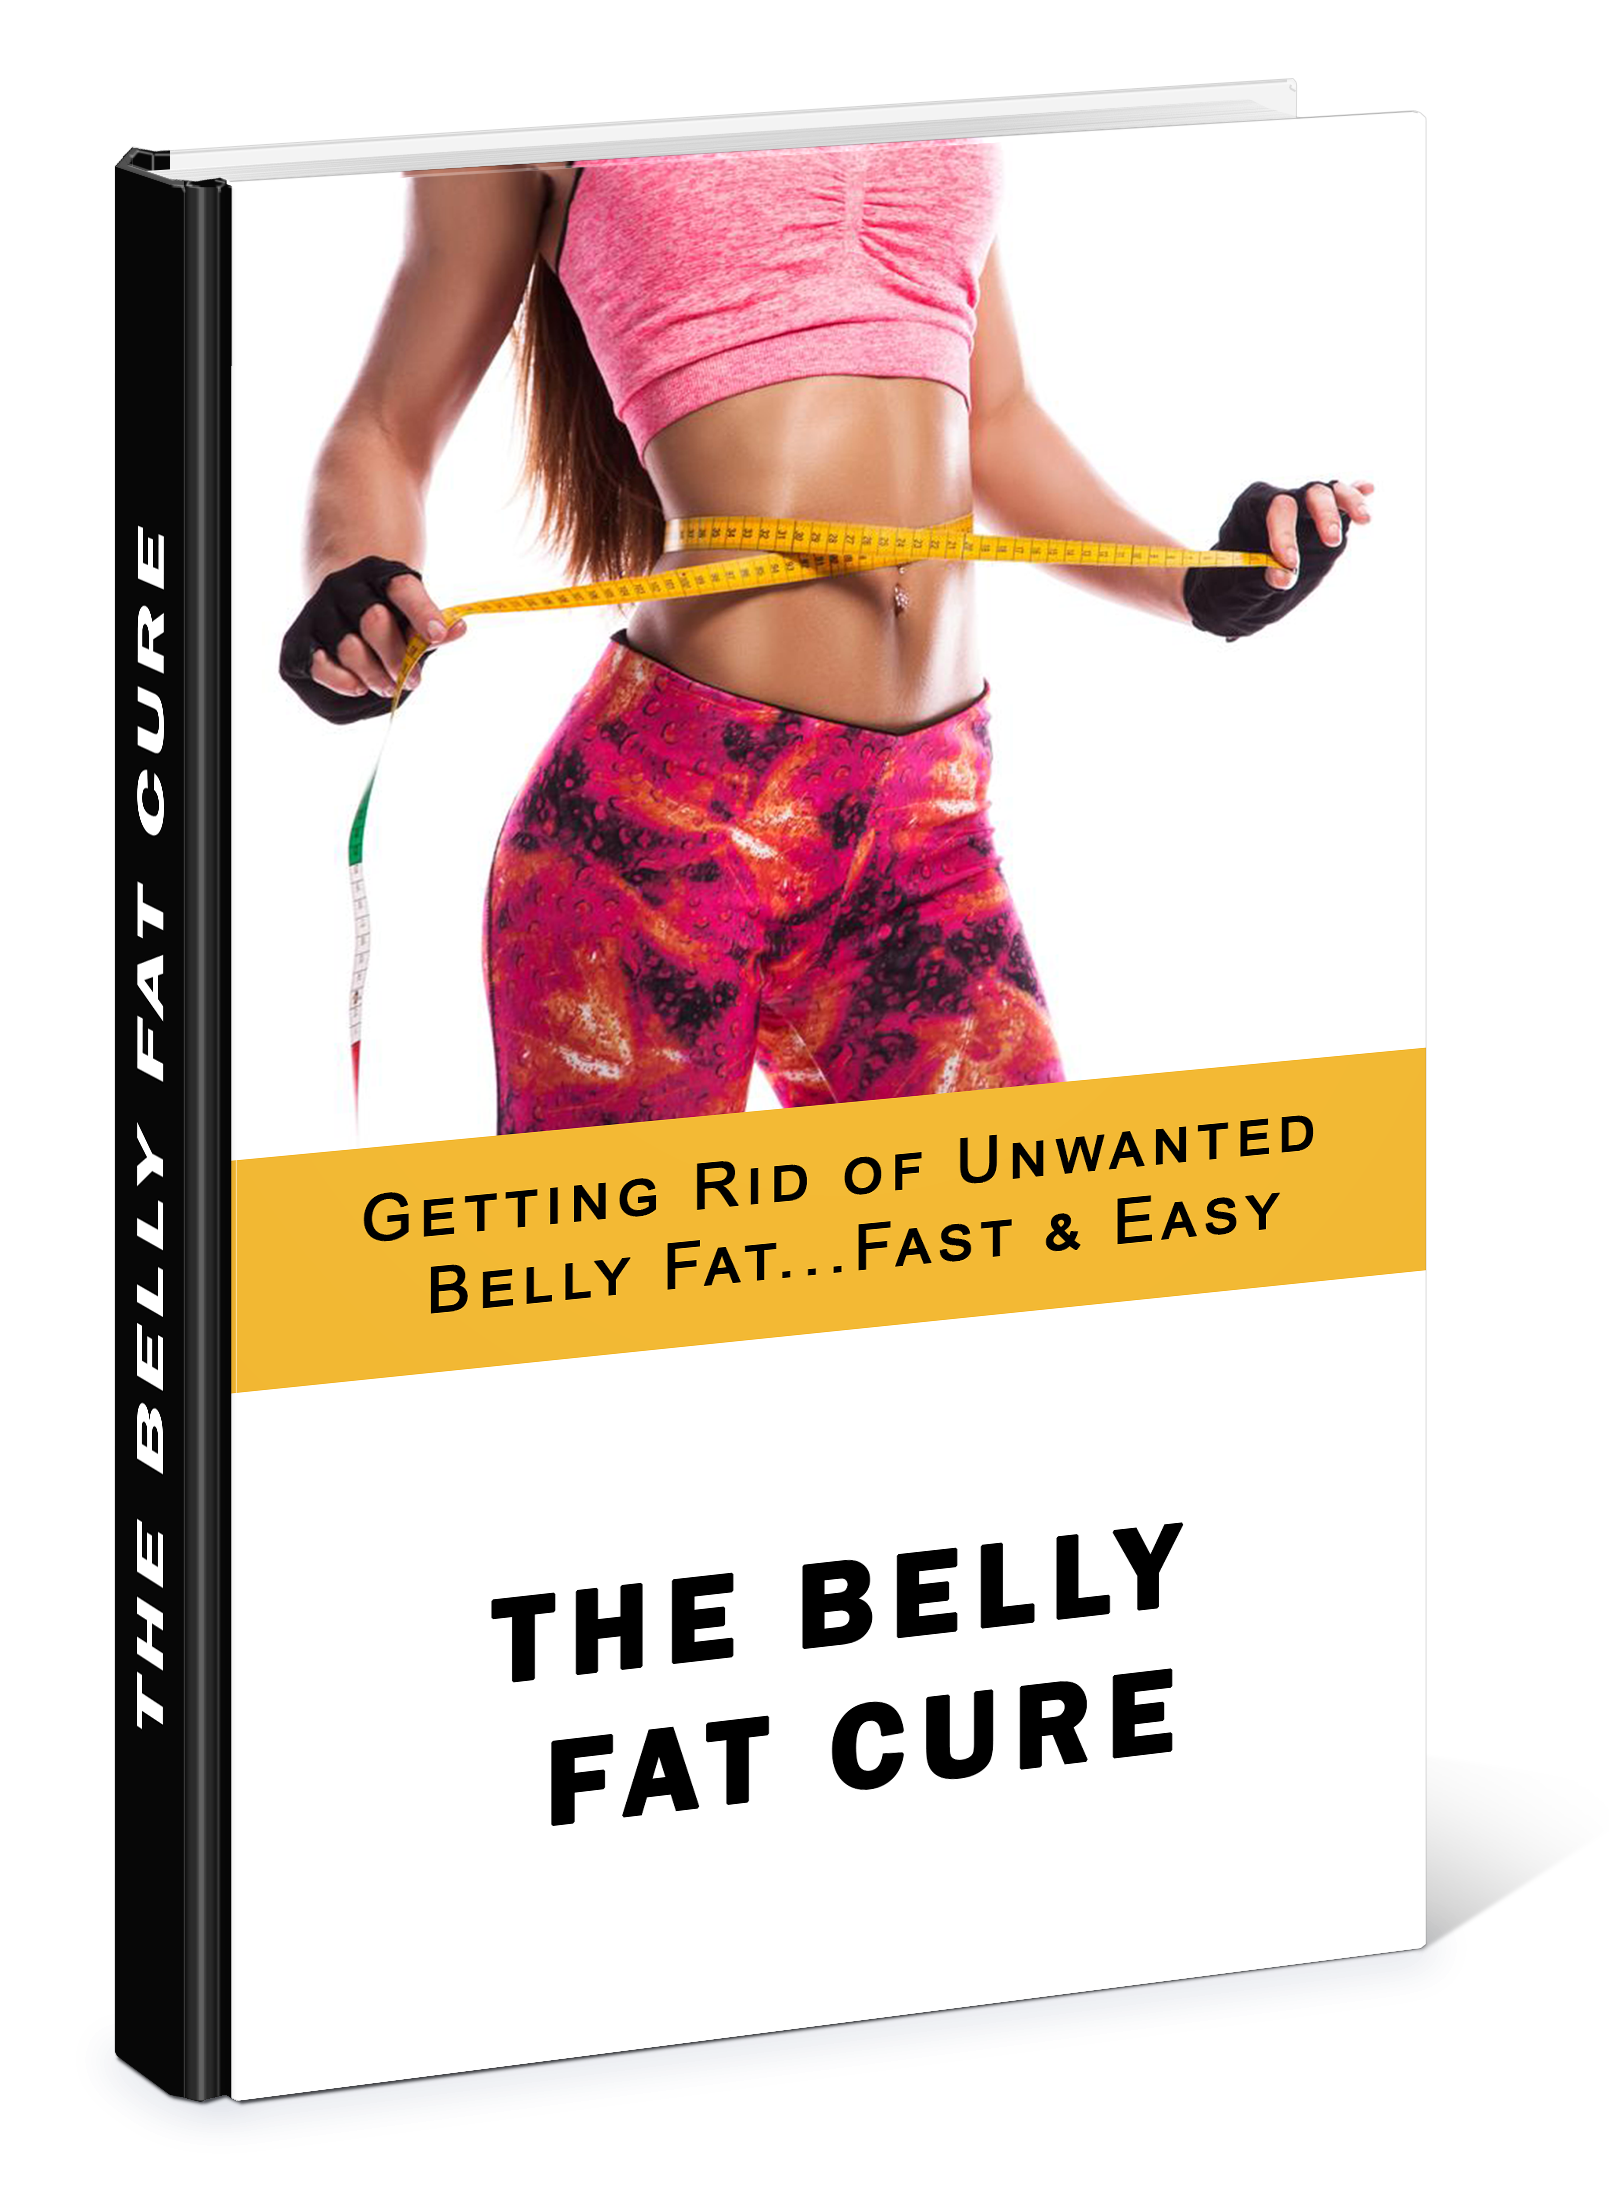 The-belly-fat-cure.png